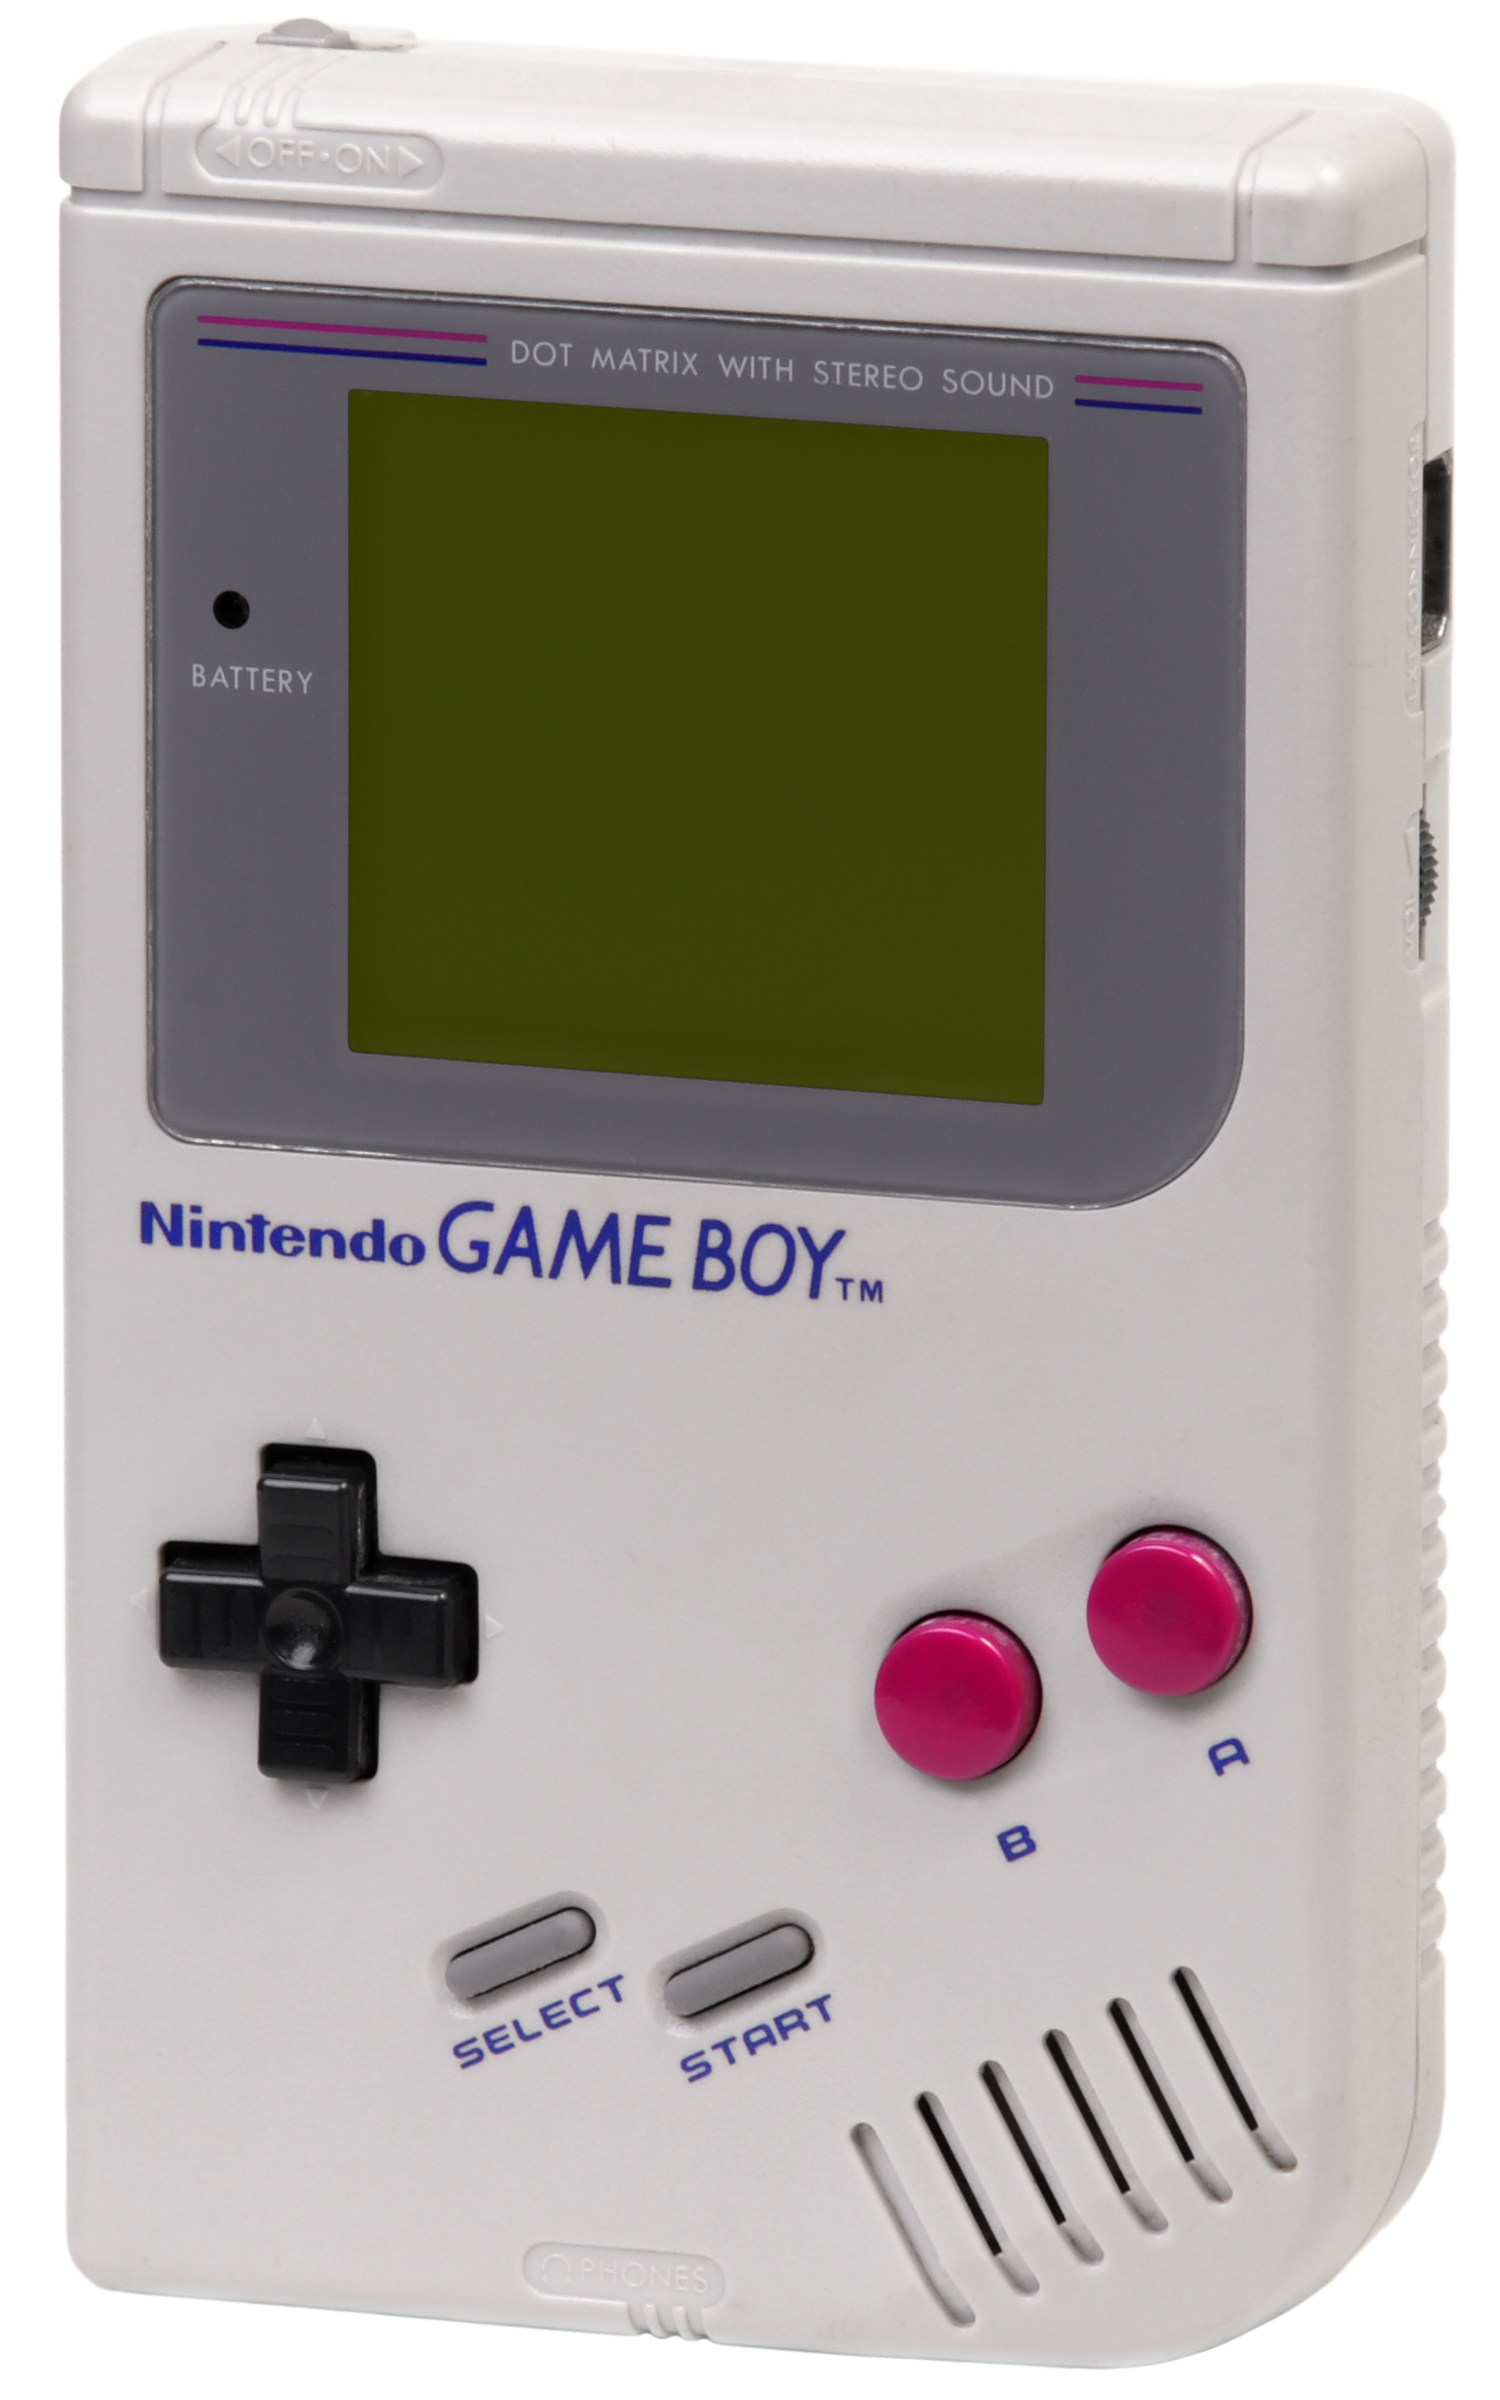 Game boy color kaufen - Game Boy Color Kaufen 3